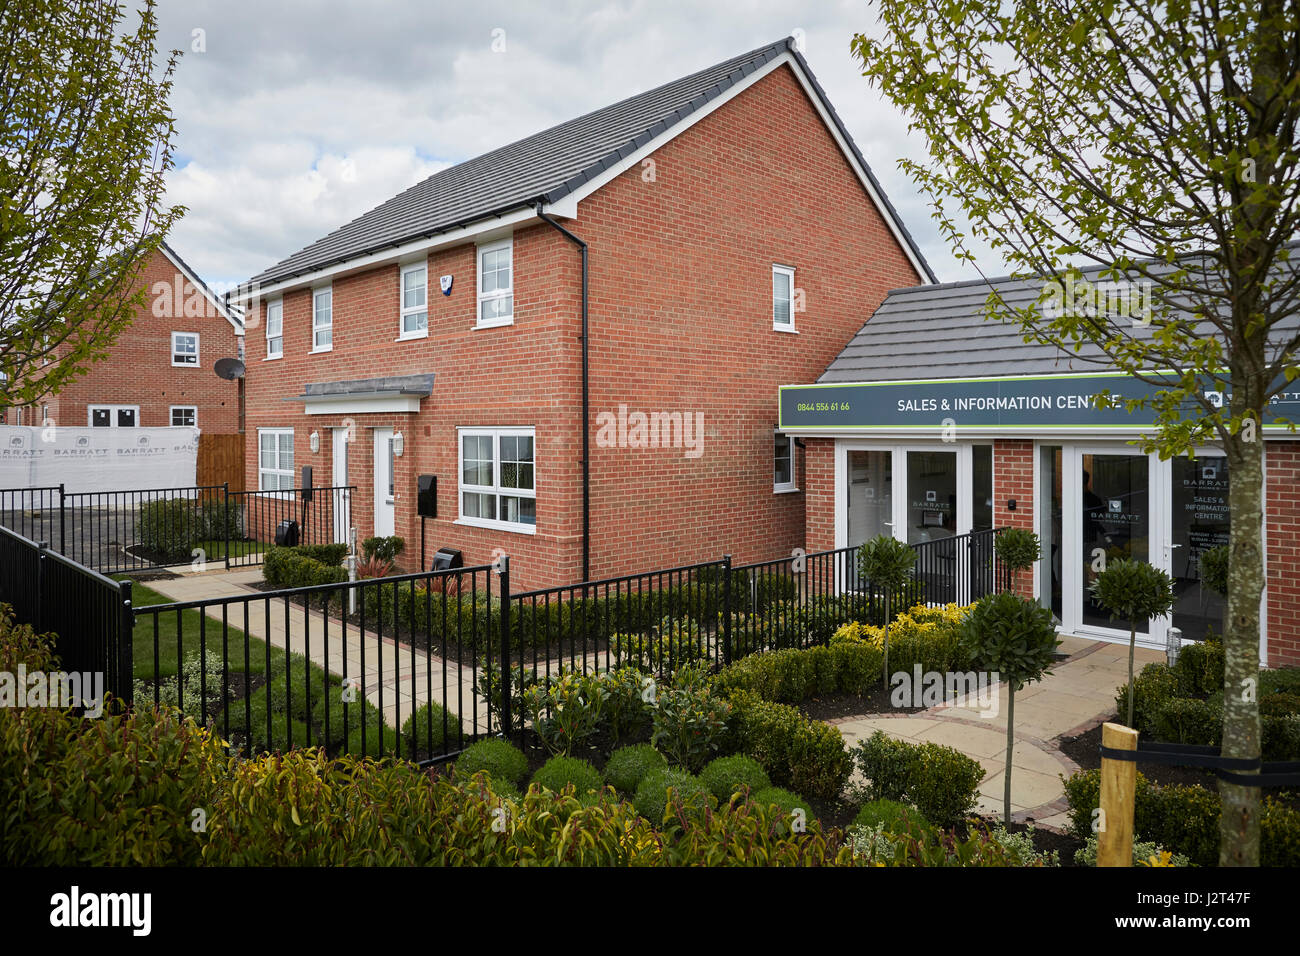 New barratt homes housing development stock photos new for North west house